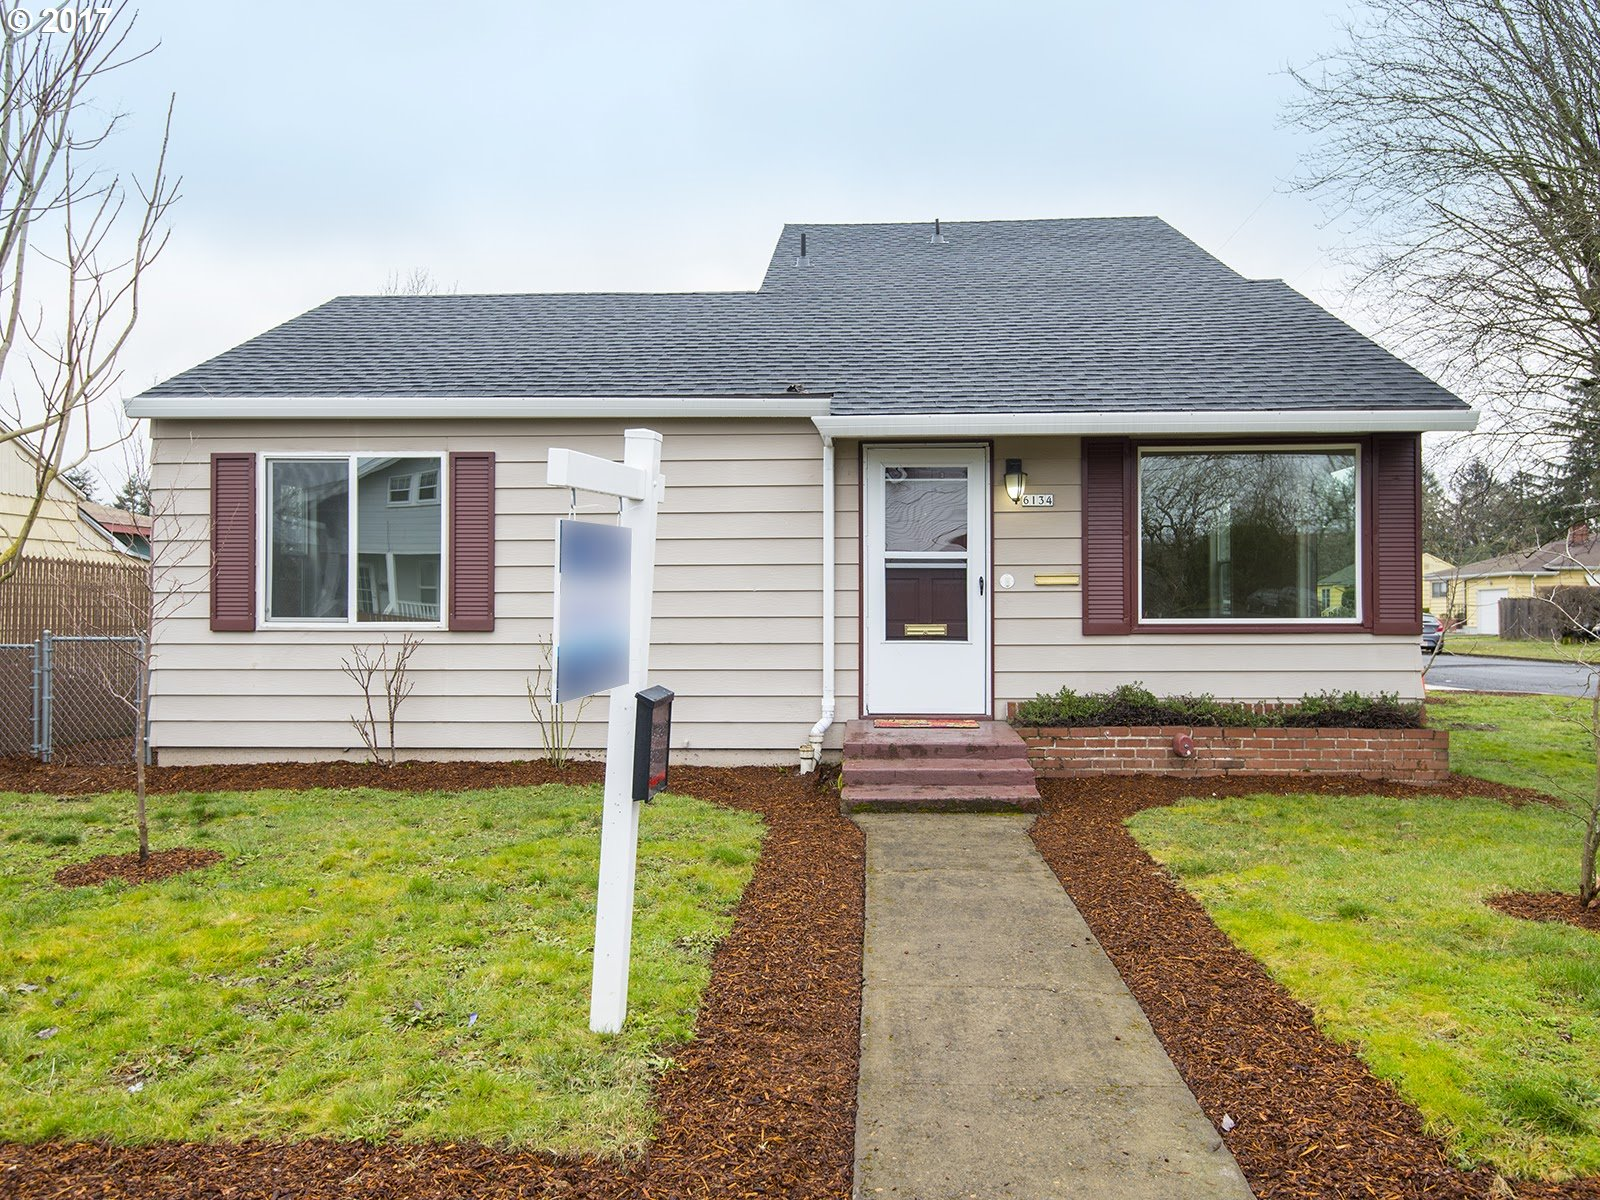 1344 sq. ft 3 bedrooms 2 bathrooms  House For Sale, Portland, OR